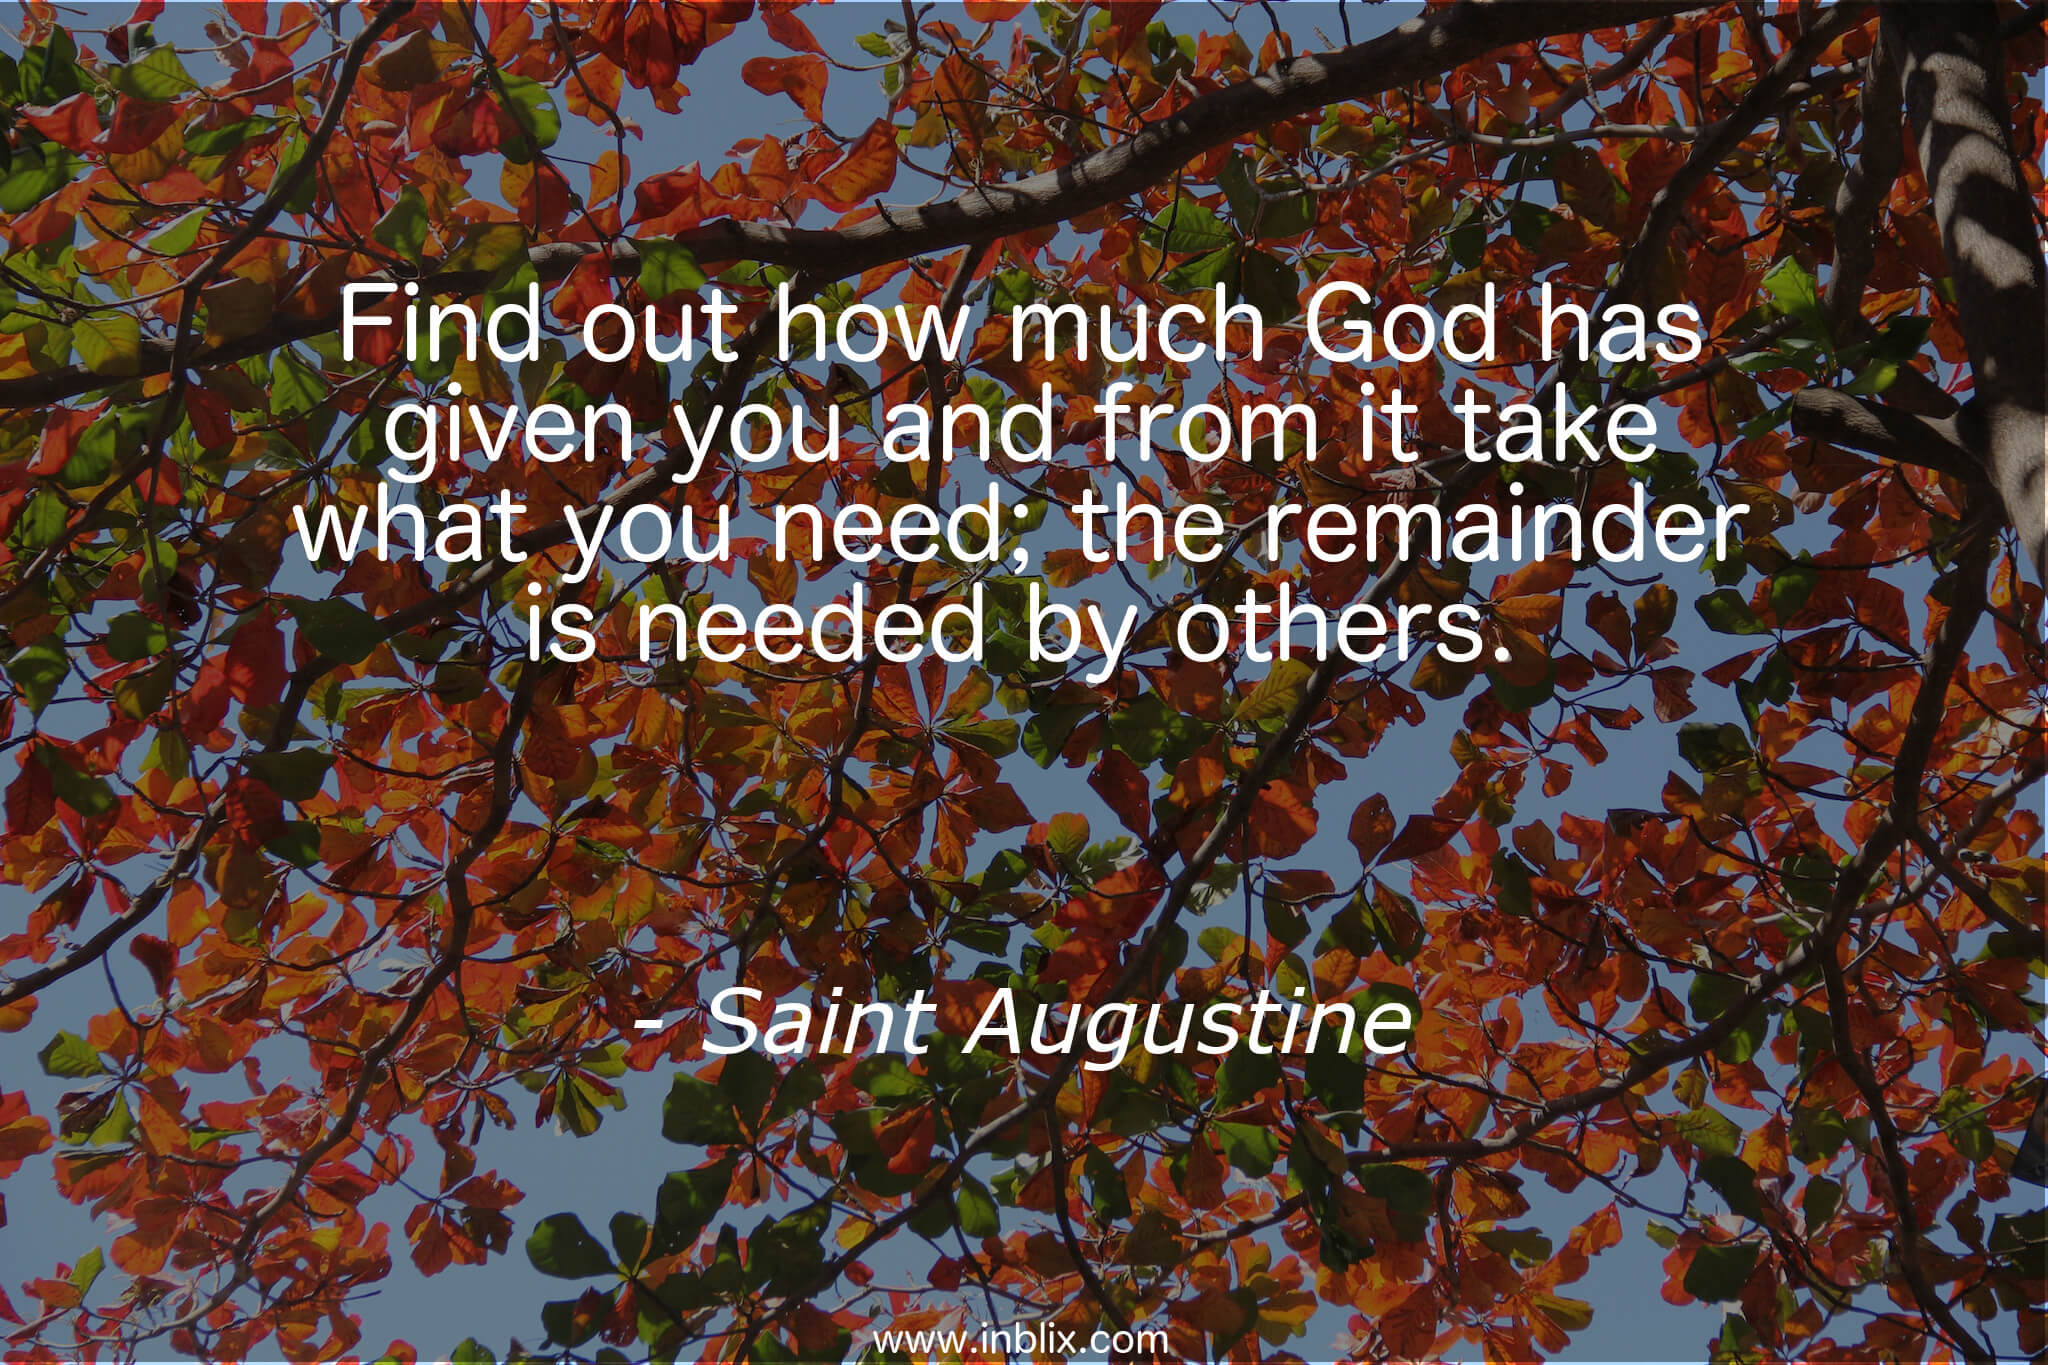 Find out how much God has give you and from it take what you need; the remainder is needed by others.